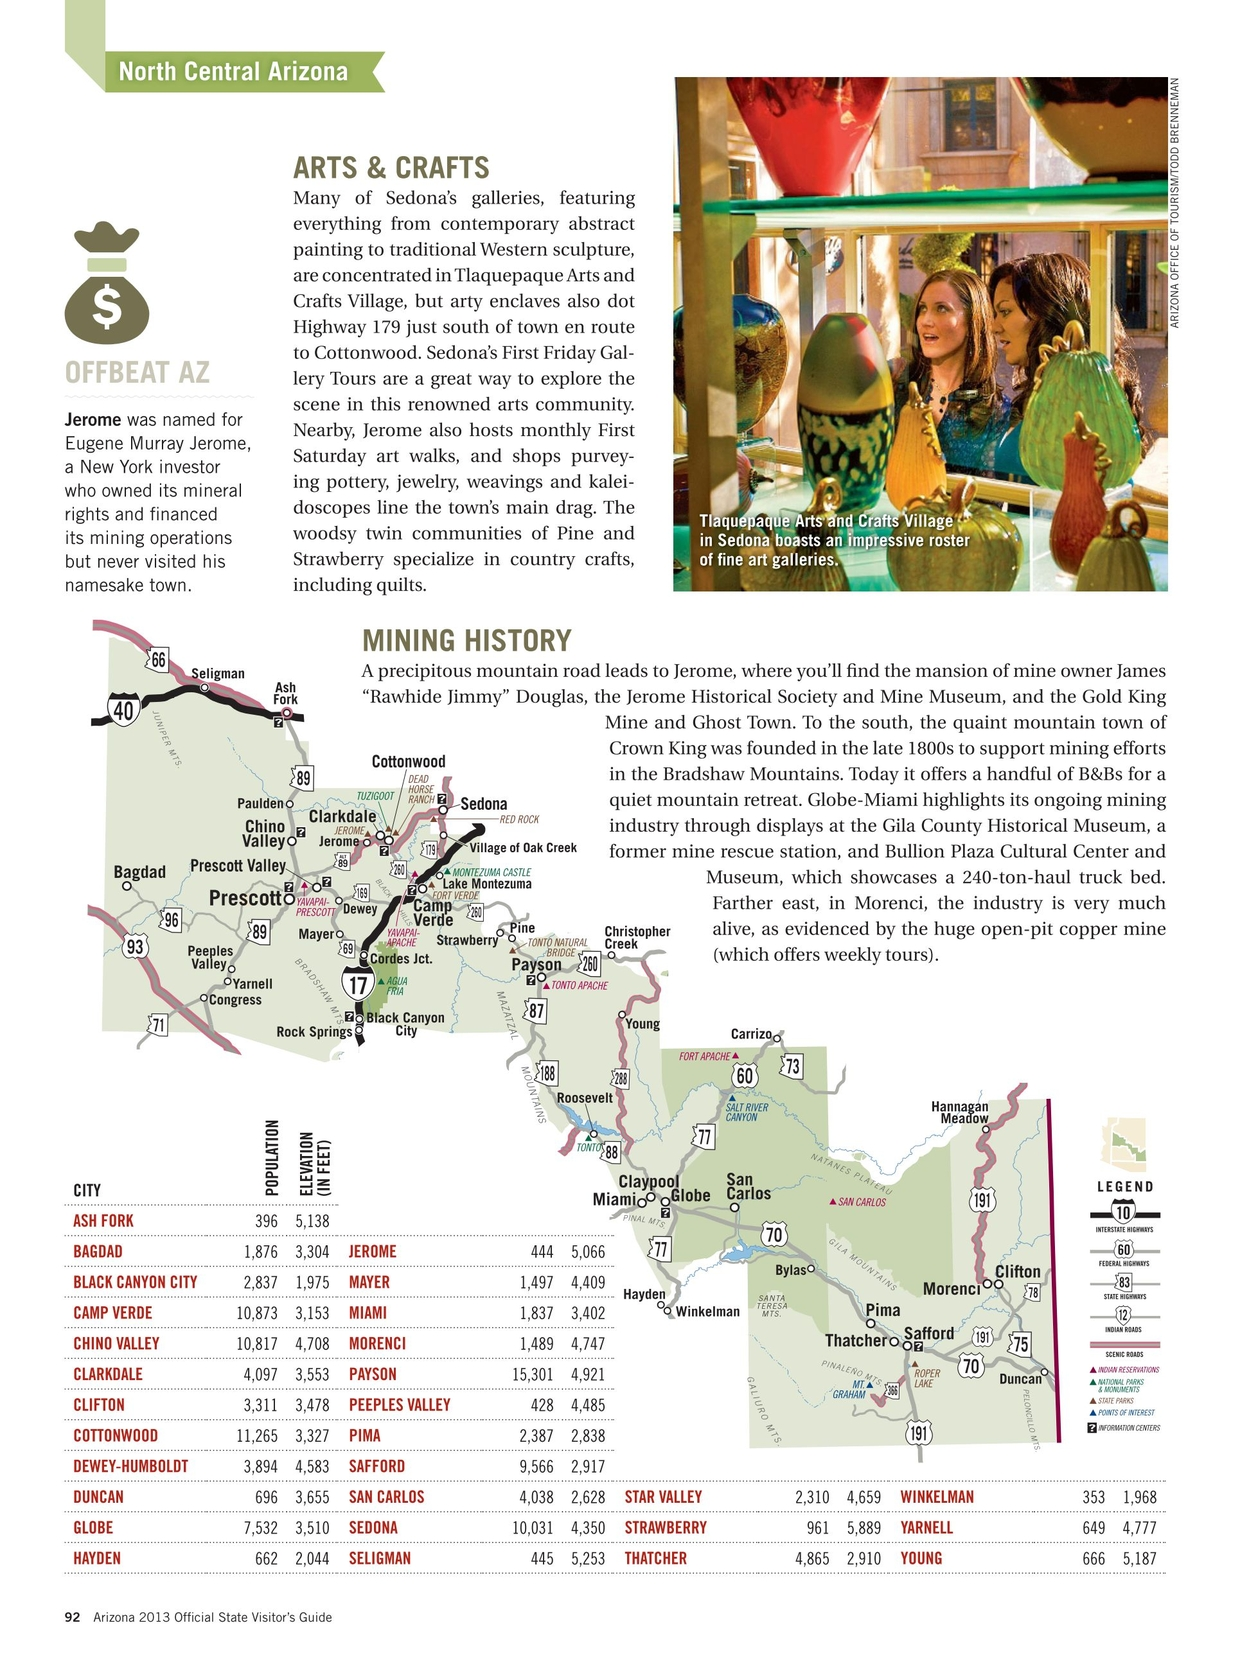 Map Of Arizona Including Jerome.2013 Arizona Official State Visitor Guide